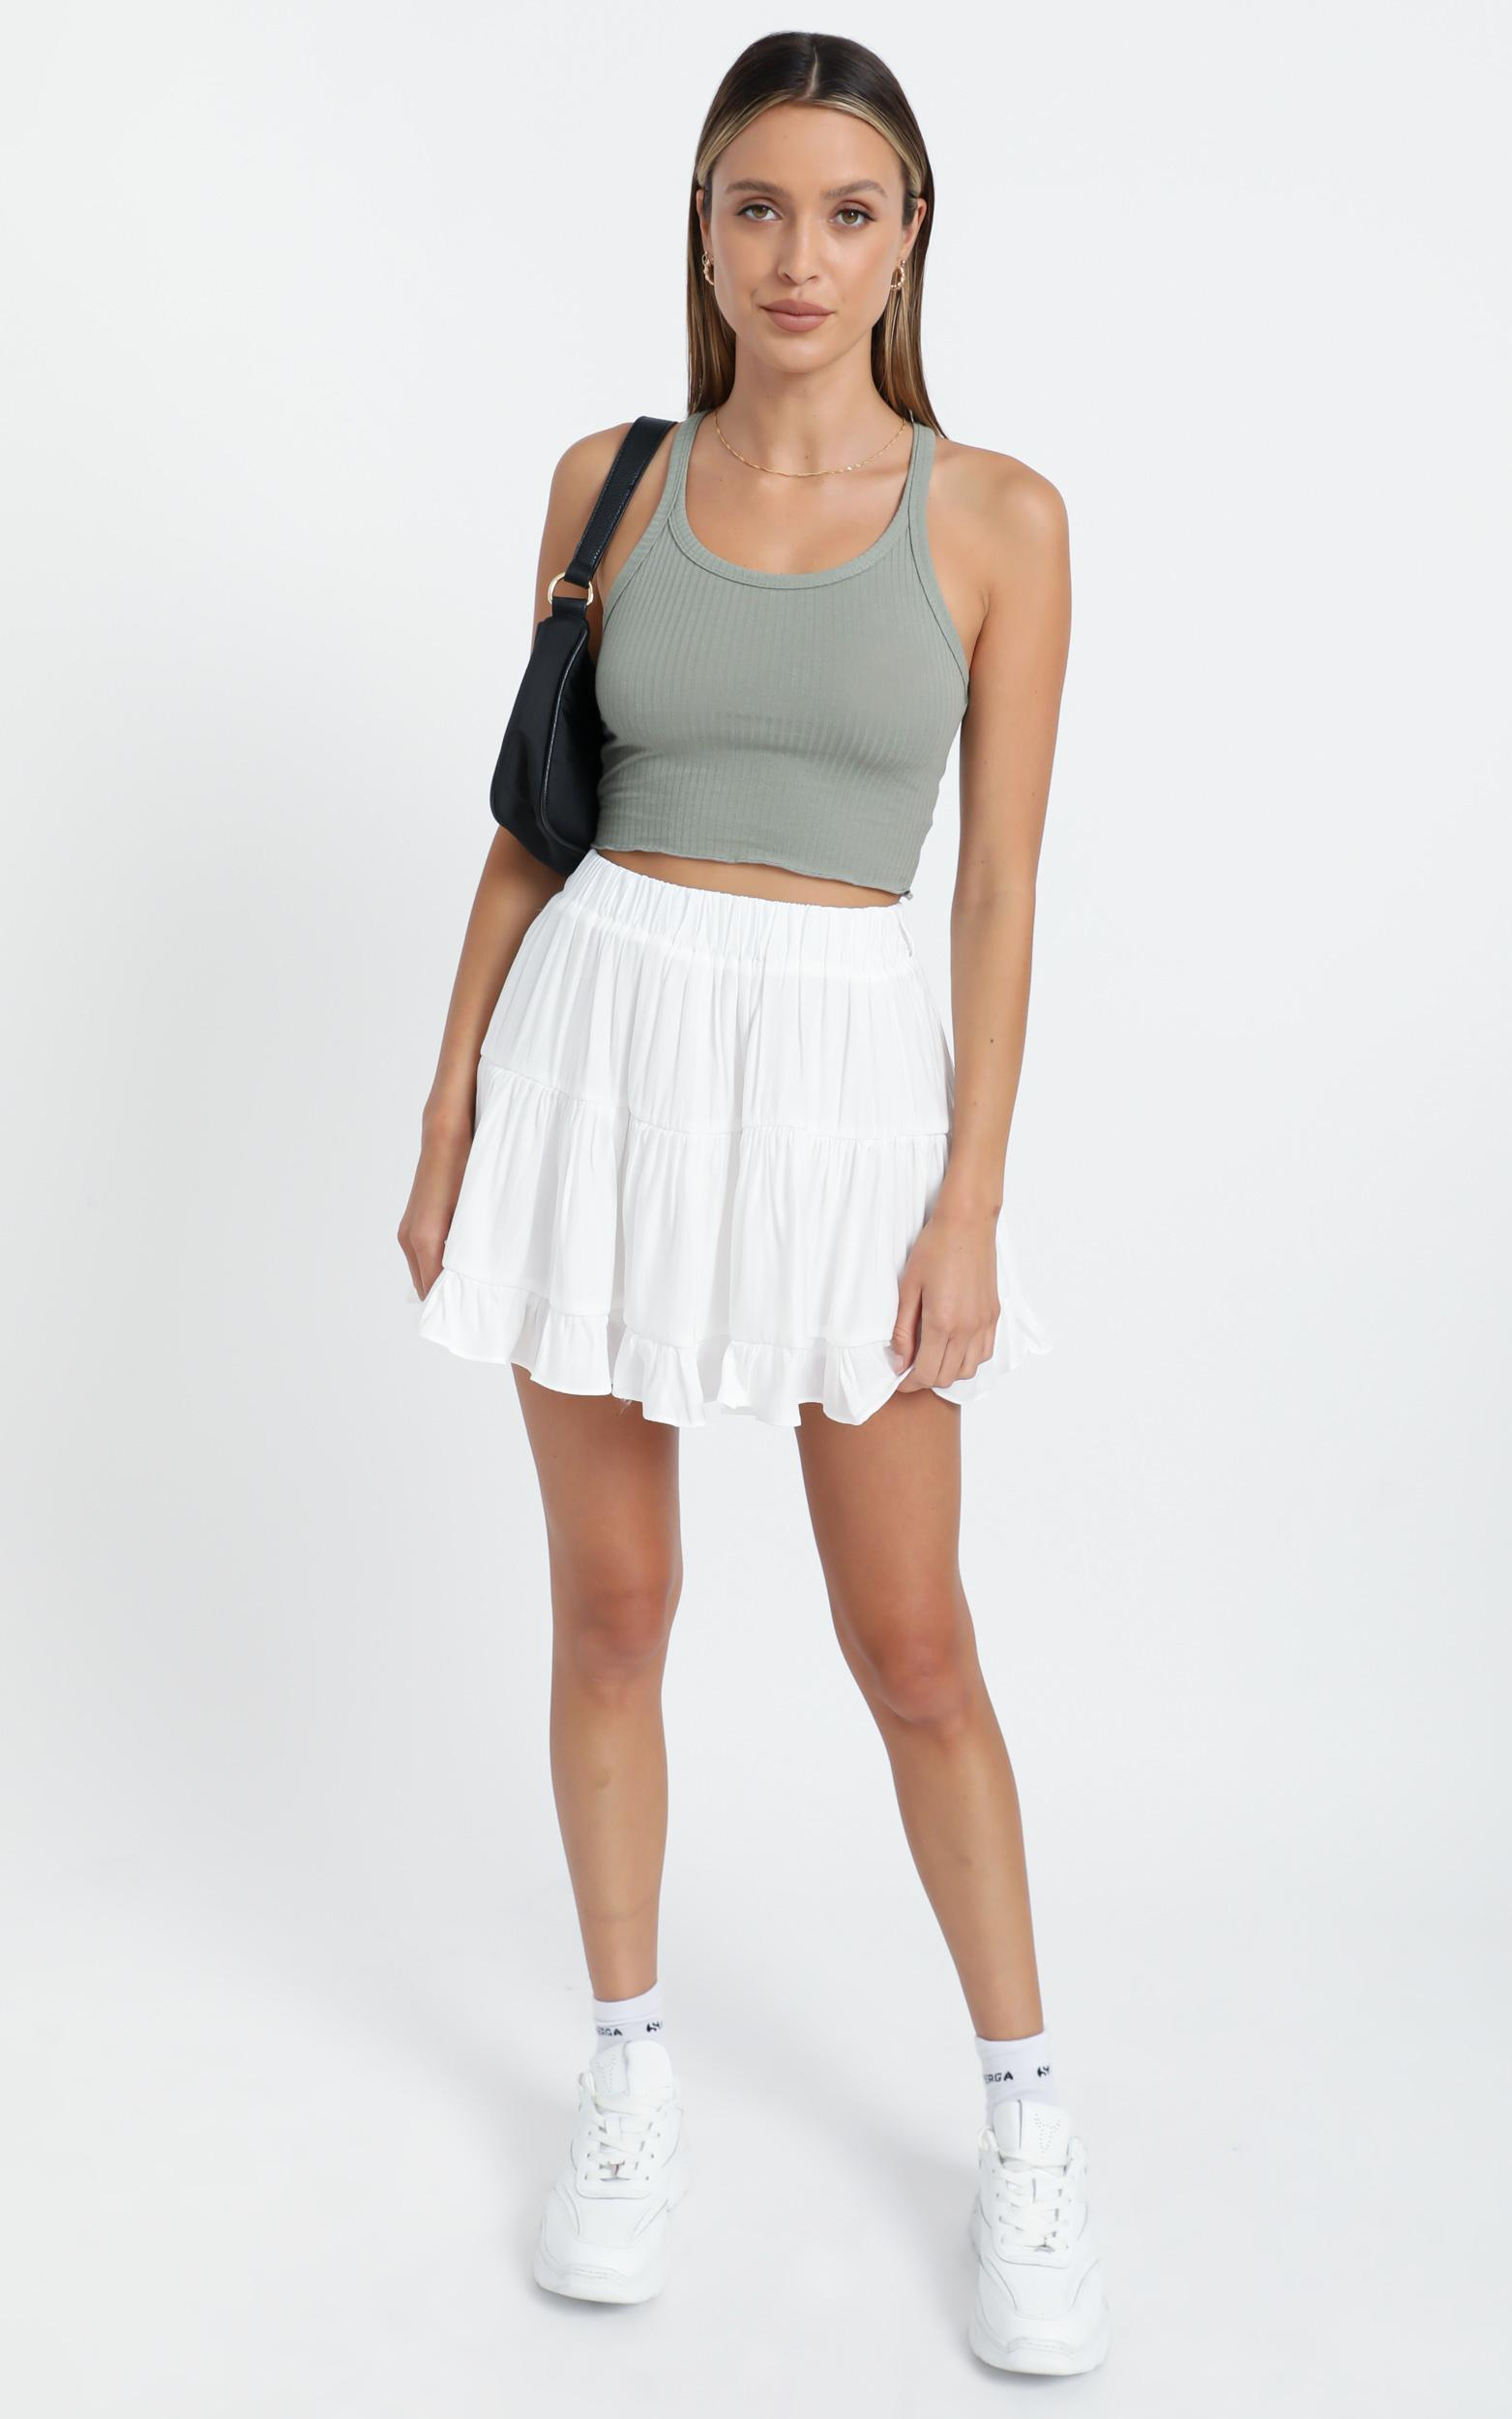 Laurissa Skirt in White - 8 (S), White, hi-res image number null